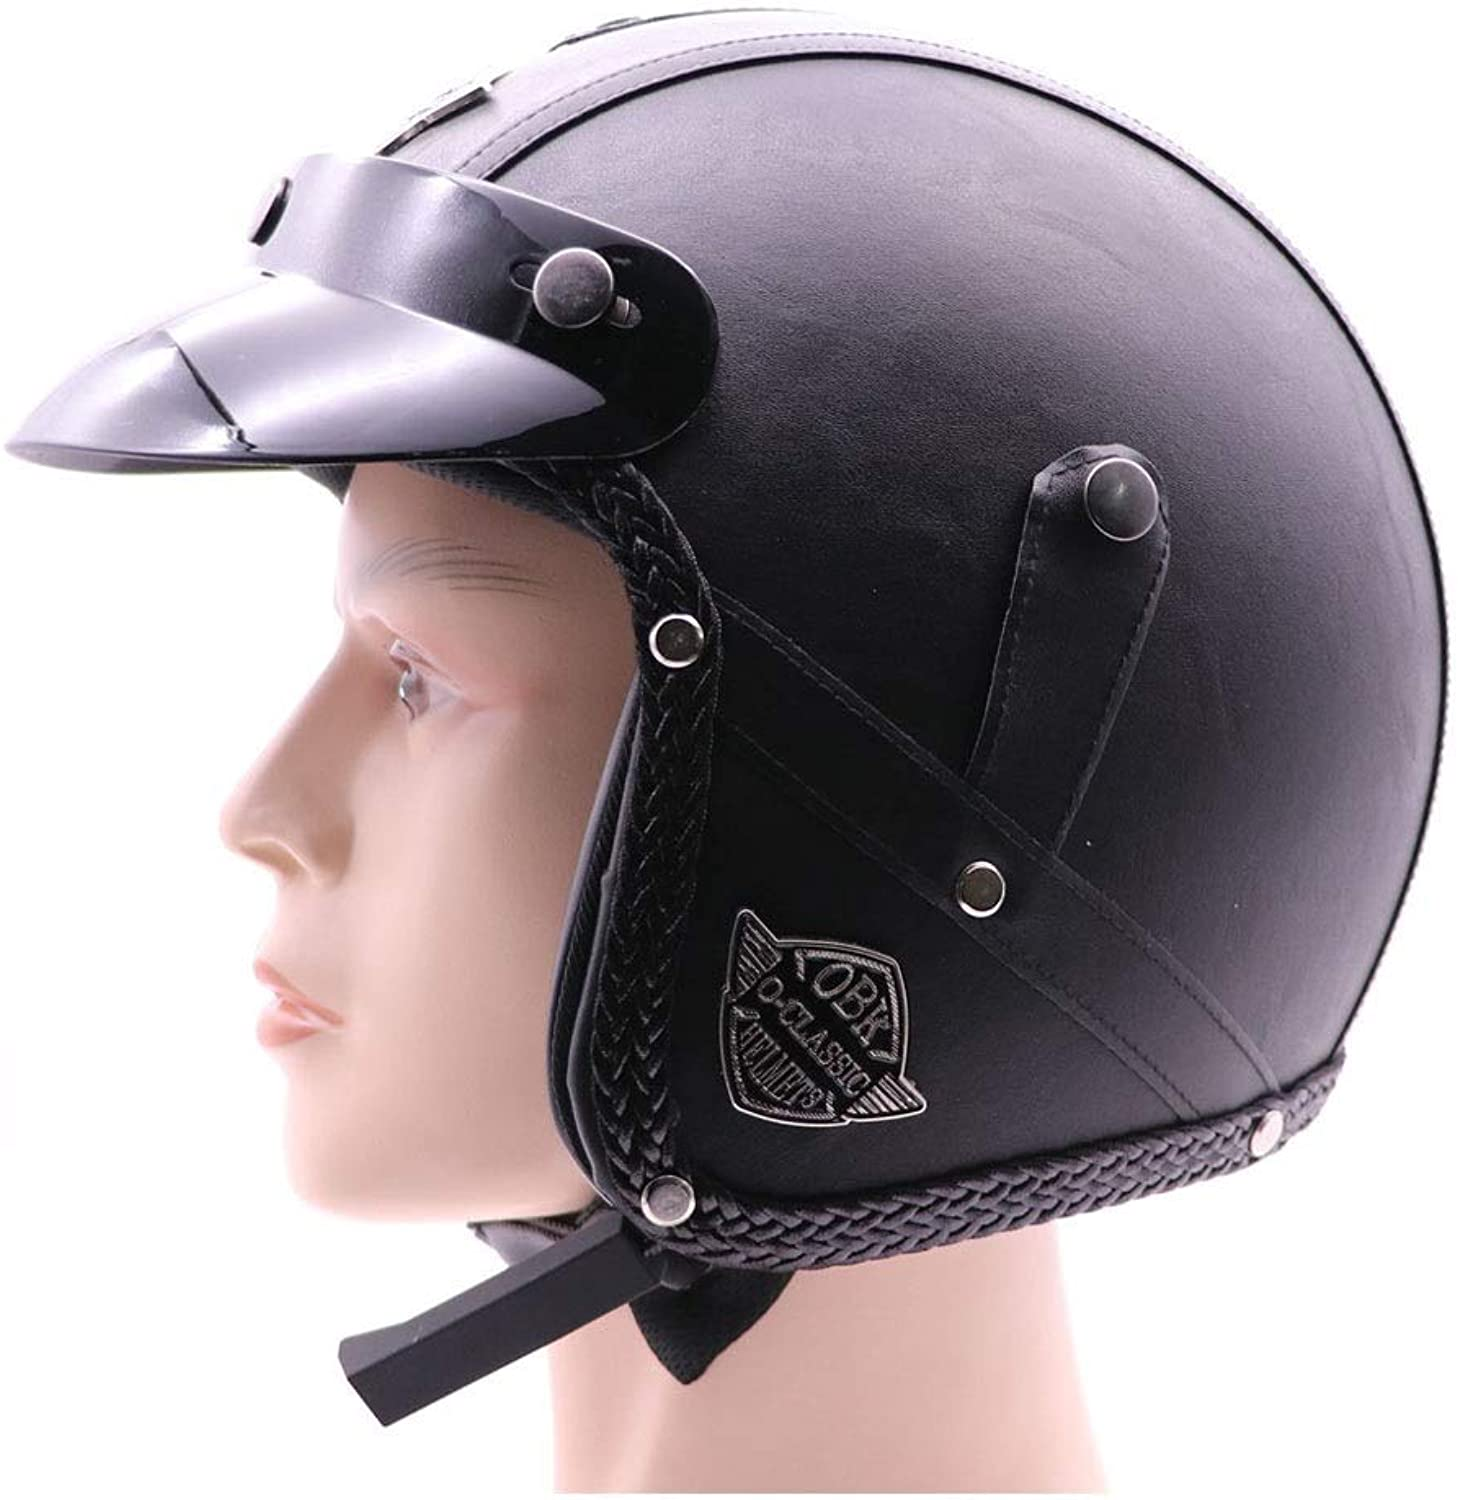 Songlin@yuan Retro Safety Helmet Handmade Personality Retro Harley Helmet Motorcycle 3 4 Leather Helmet Half Helmet Men and Women Half Helmet Predection